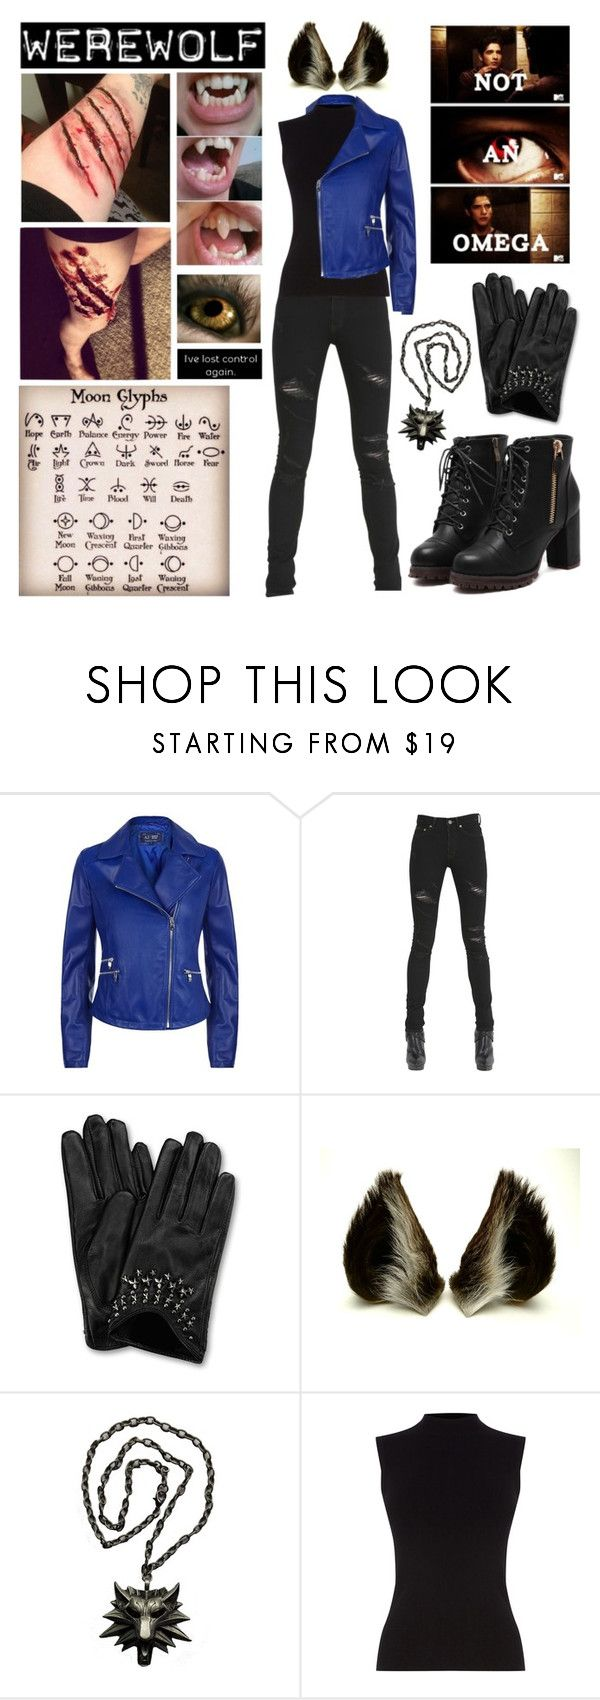 """Werewolf Halloween Costume - Kekkai Sensen Rp"" by americaneagle3297 ❤ liked on Polyvore featuring Armani Jeans, Yves Saint Laurent and Oasis"